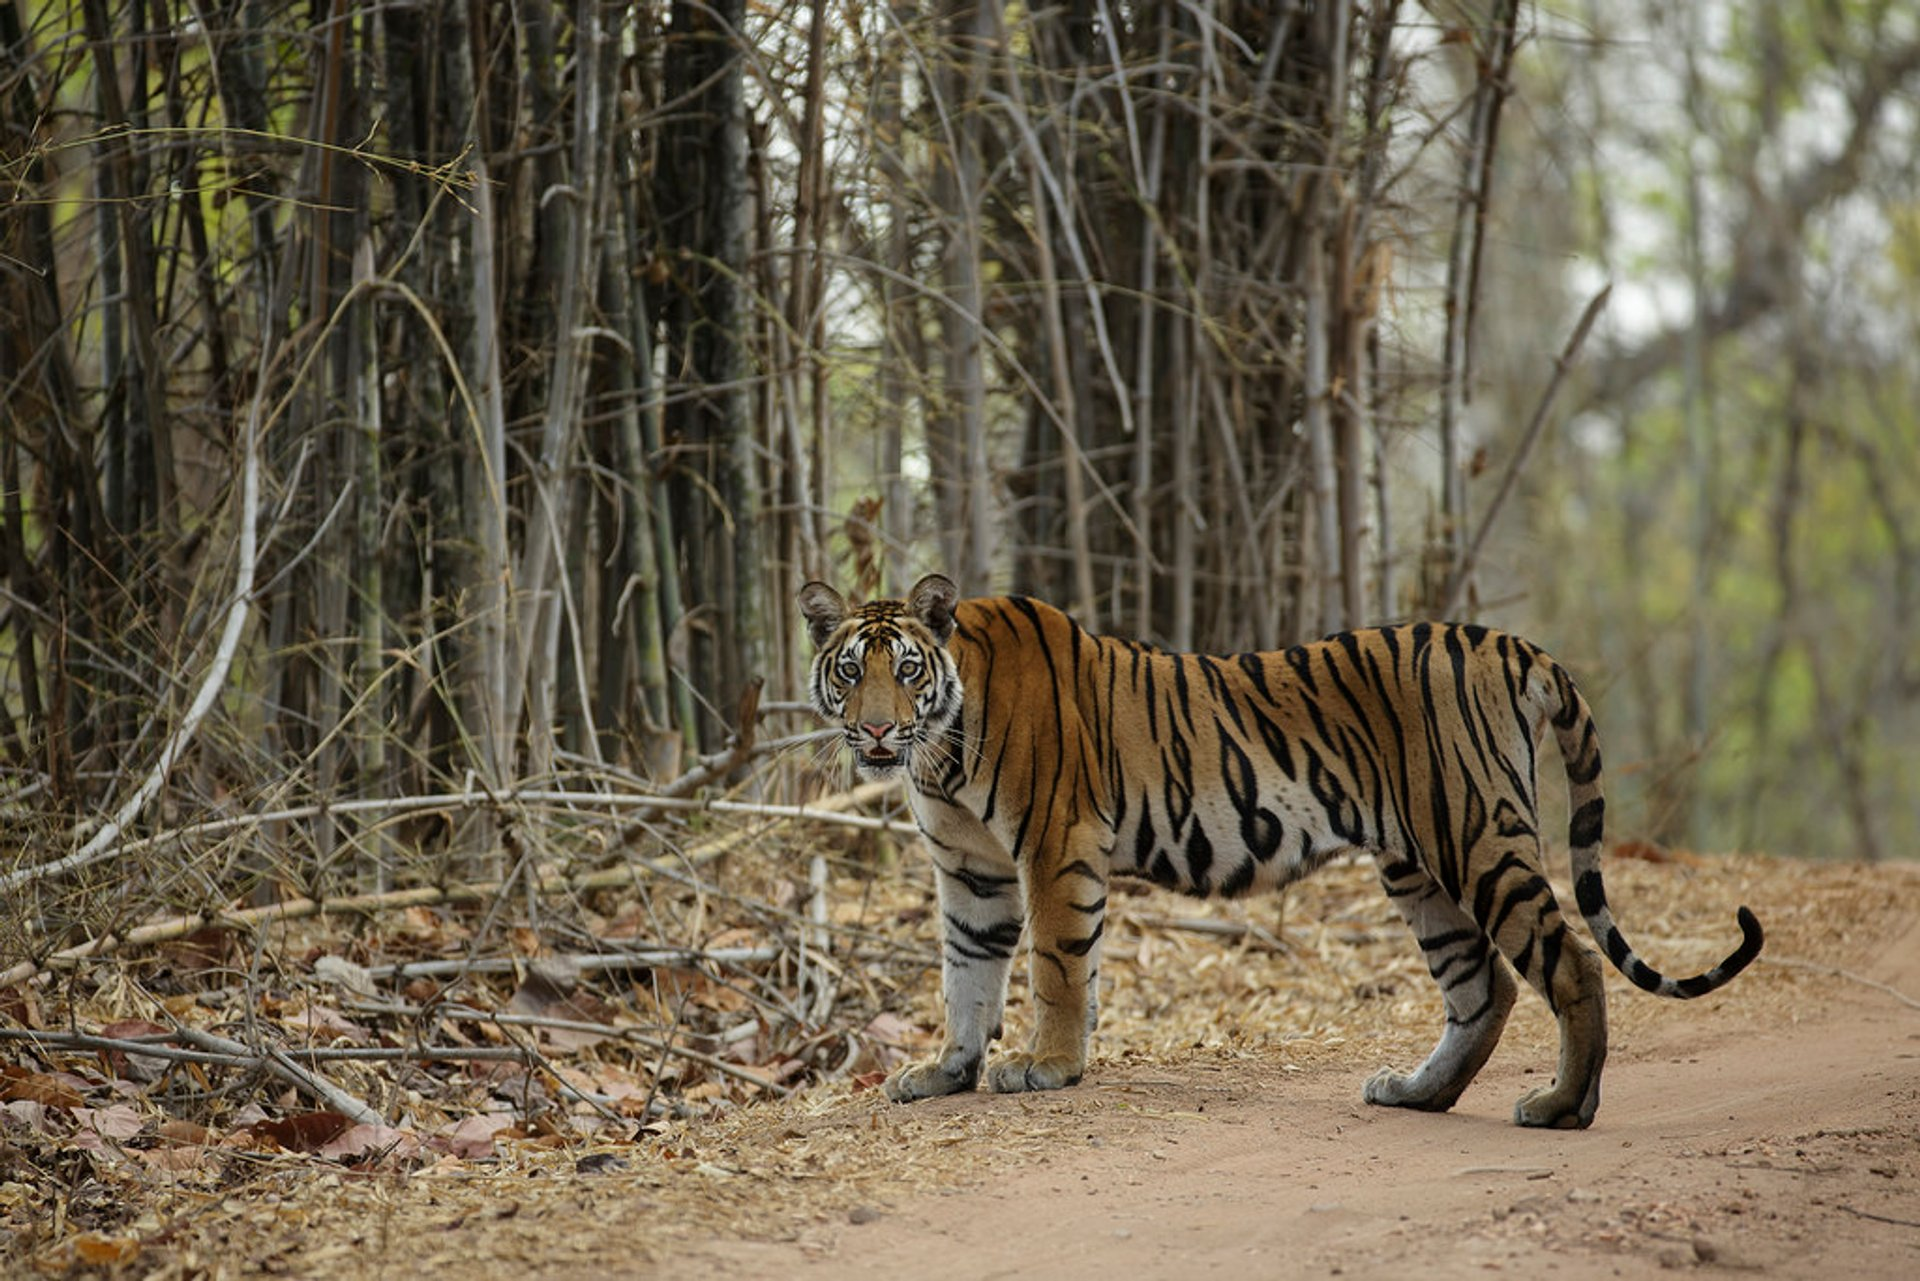 Sub adult tiger spotted in the Bandhavgarh National Park 2019